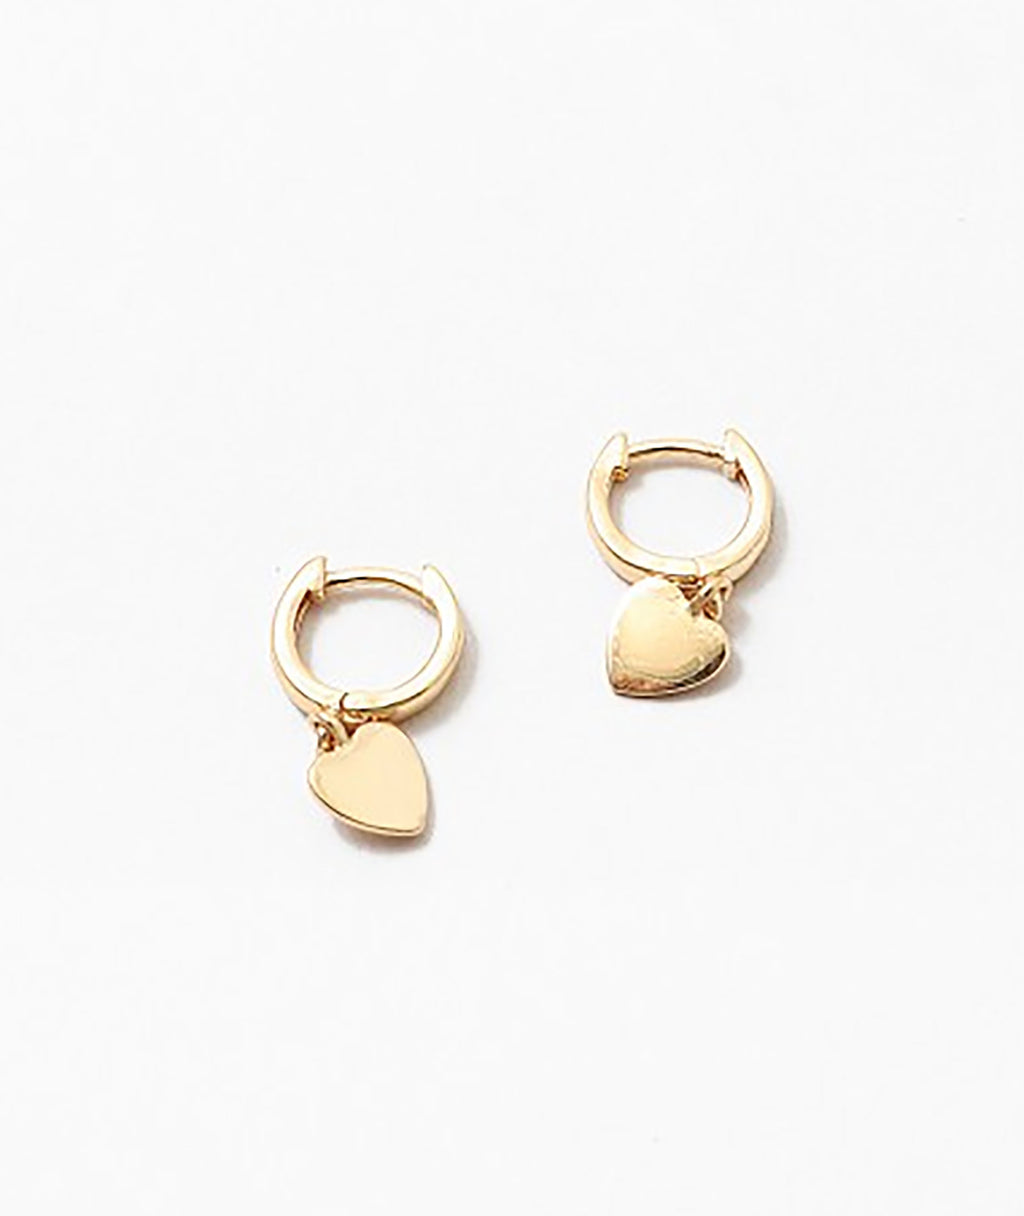 Fashionista J Gold Heart Earrings